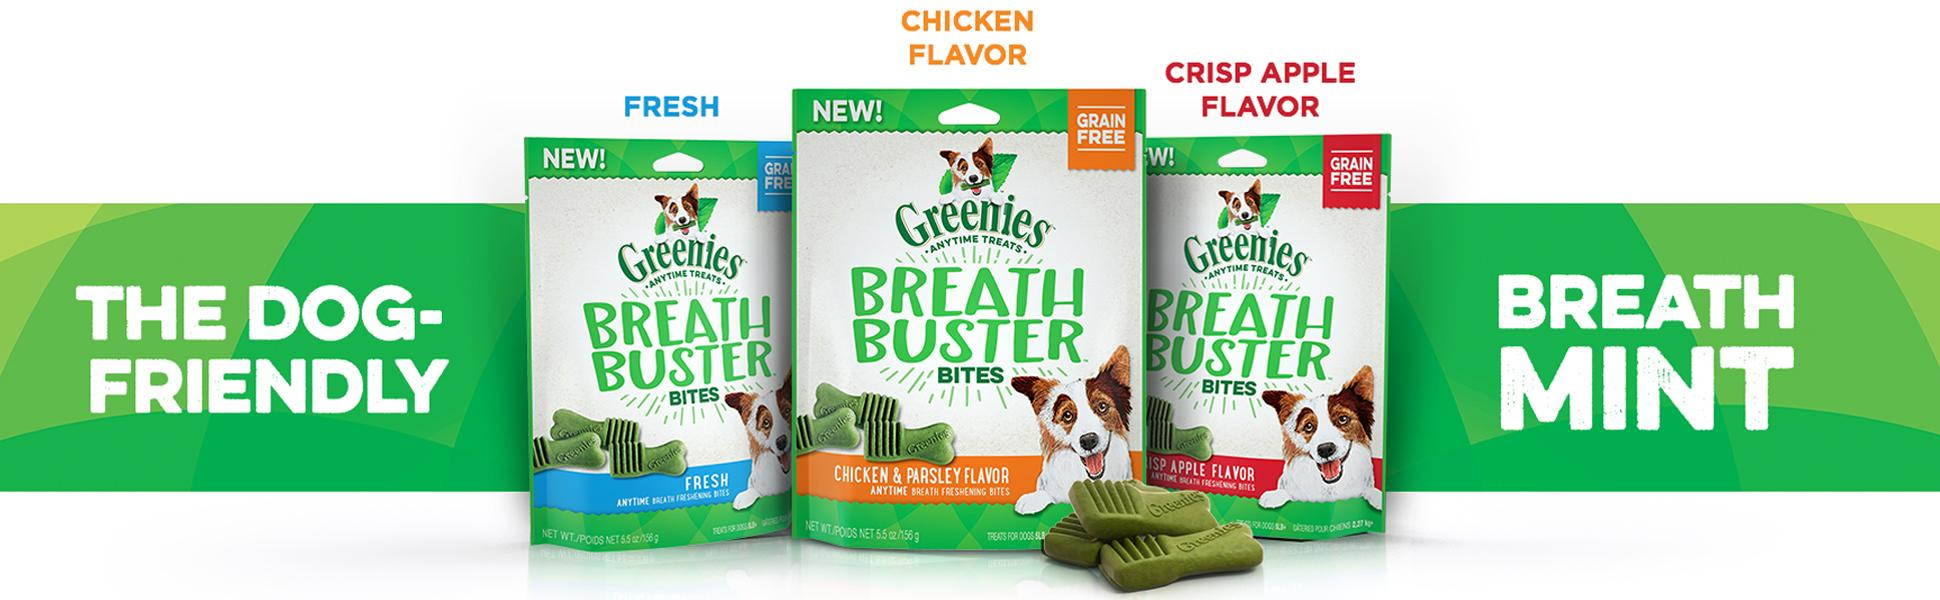 Amazon.com : Greenies BREATH BUSTER Bites Fresh Flavor